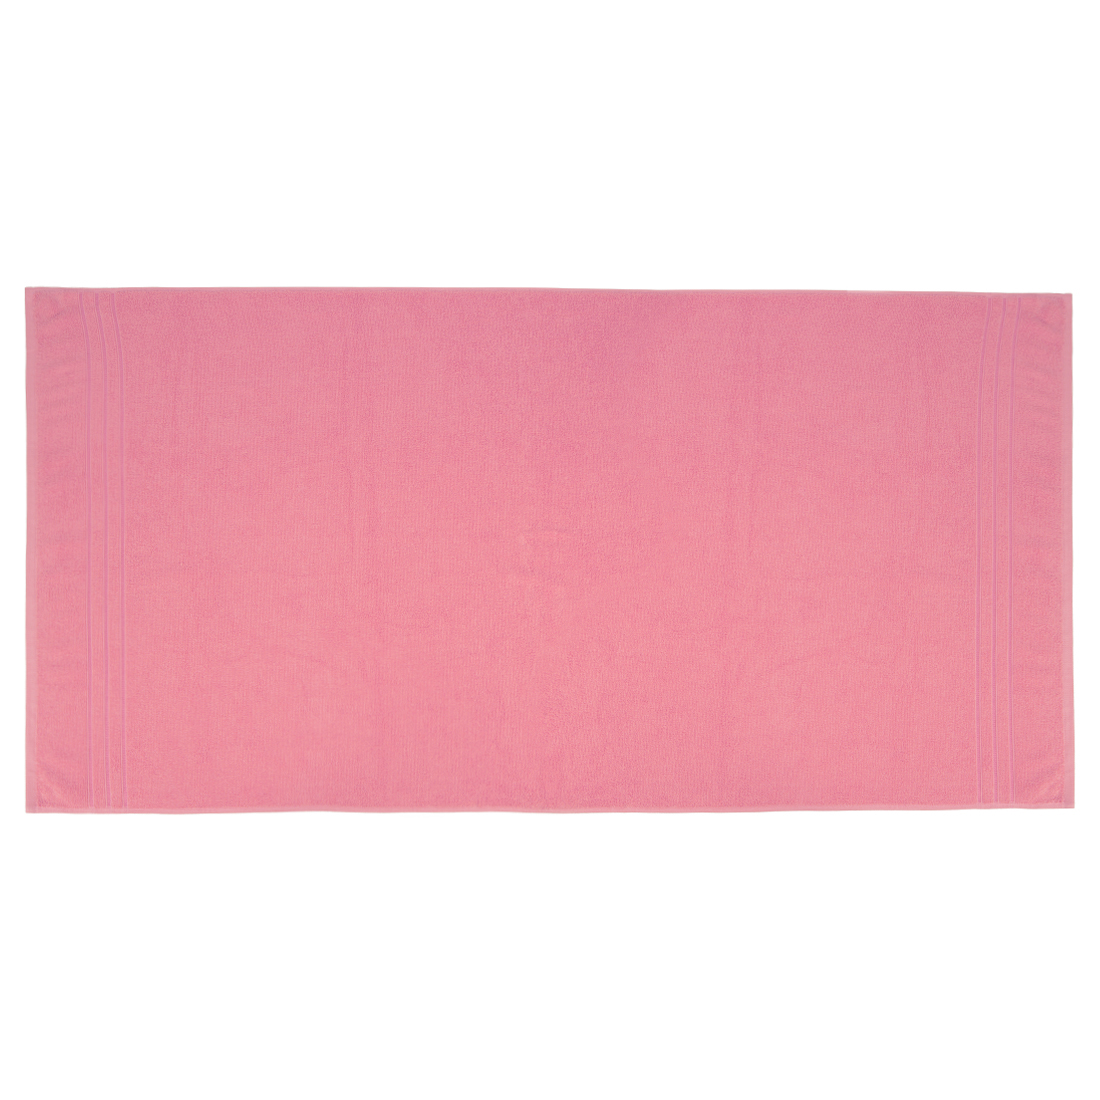 Bath Towel Nora Rose Cotton Bath Towels in Rose Colour by Living Essence